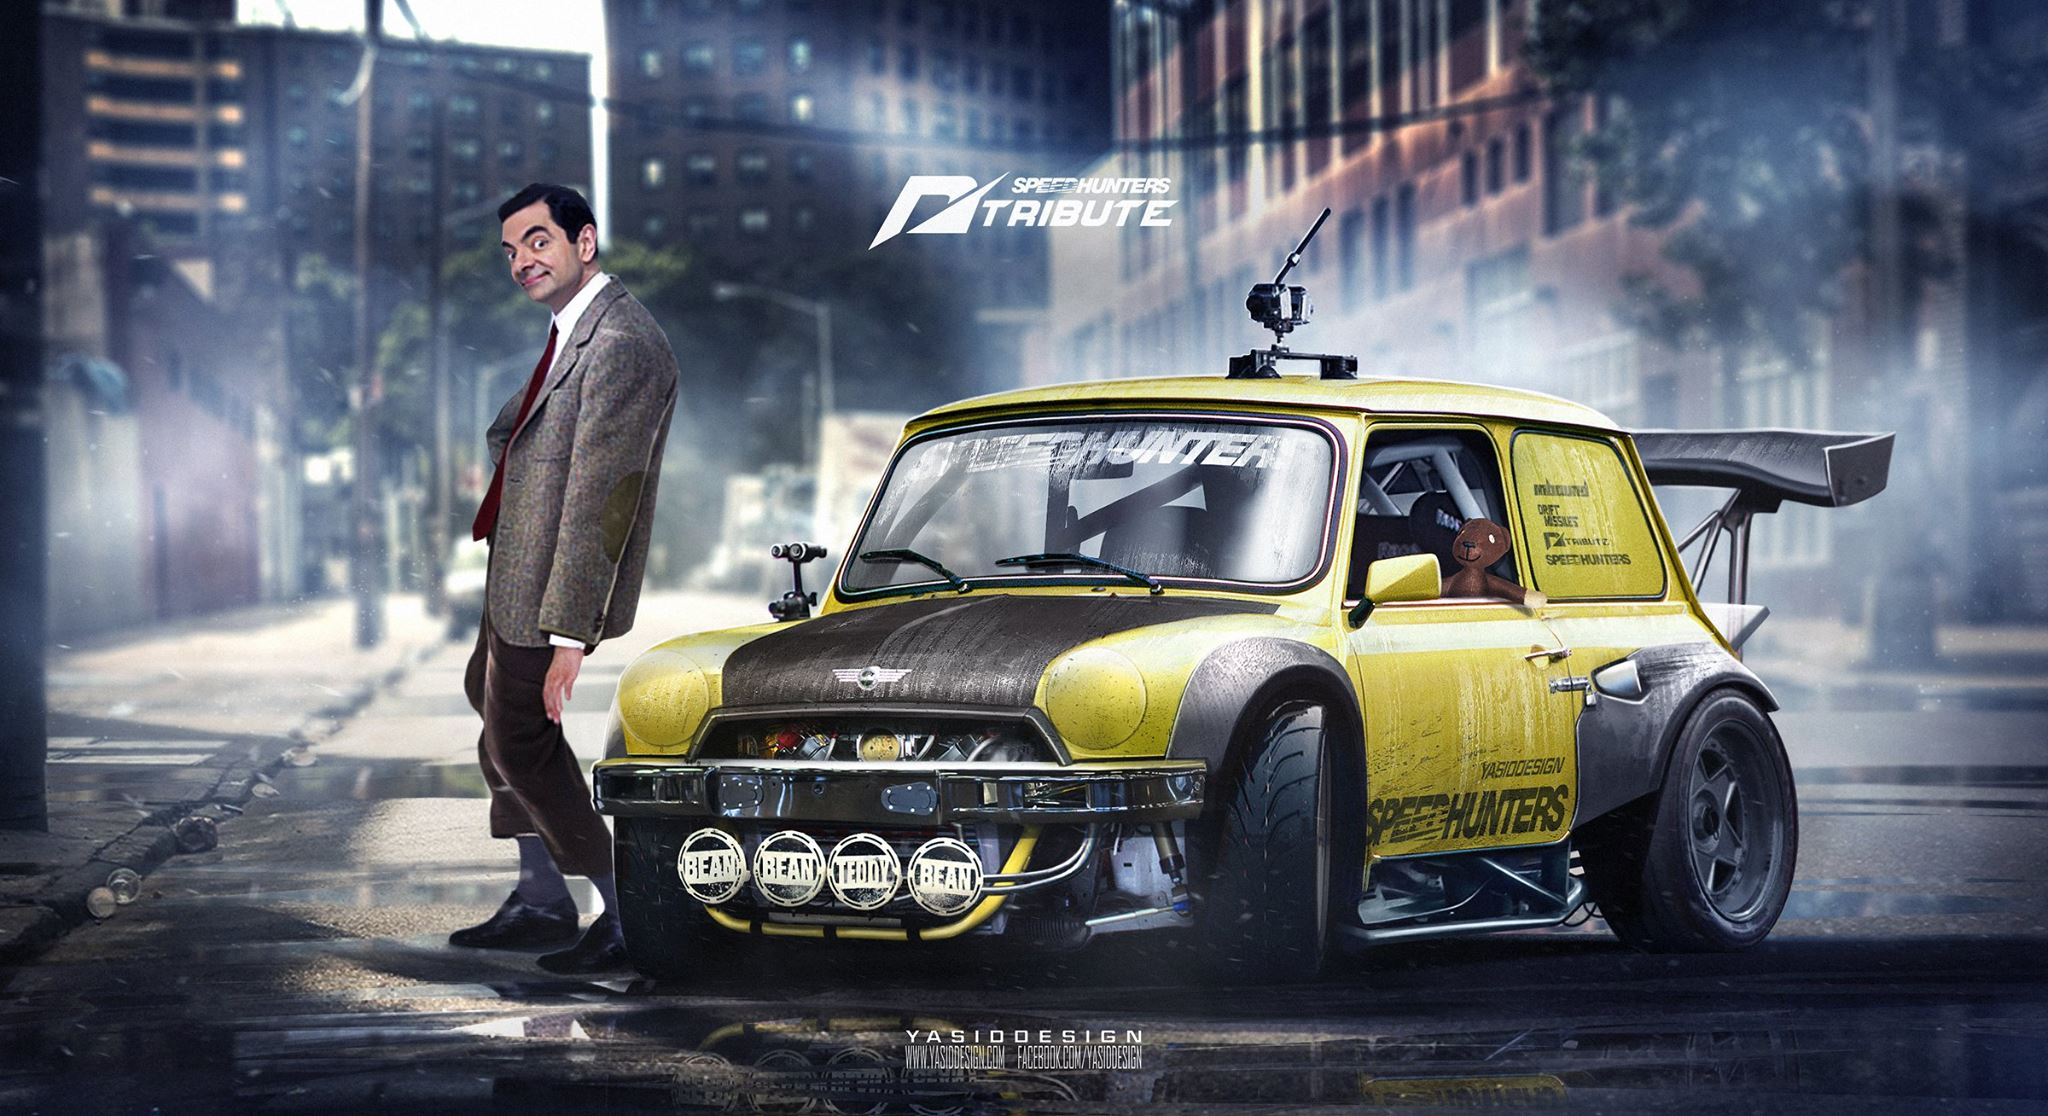 Mr Bean Mini Race Car Nfs Theme Has Huge Spoiler Autoevolution